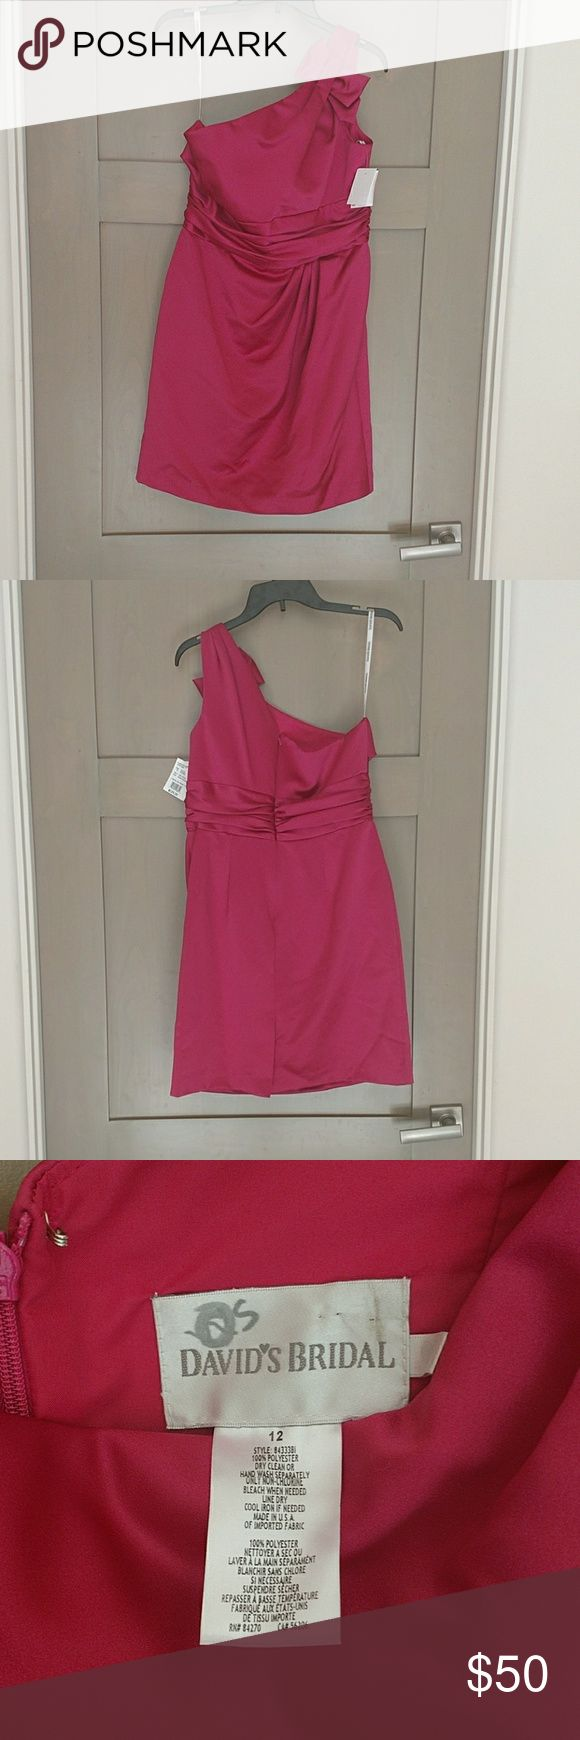 Brand new David's bridal Bridesmaid dress/ prom Watermelon color davids Bridal Dresses Wedding